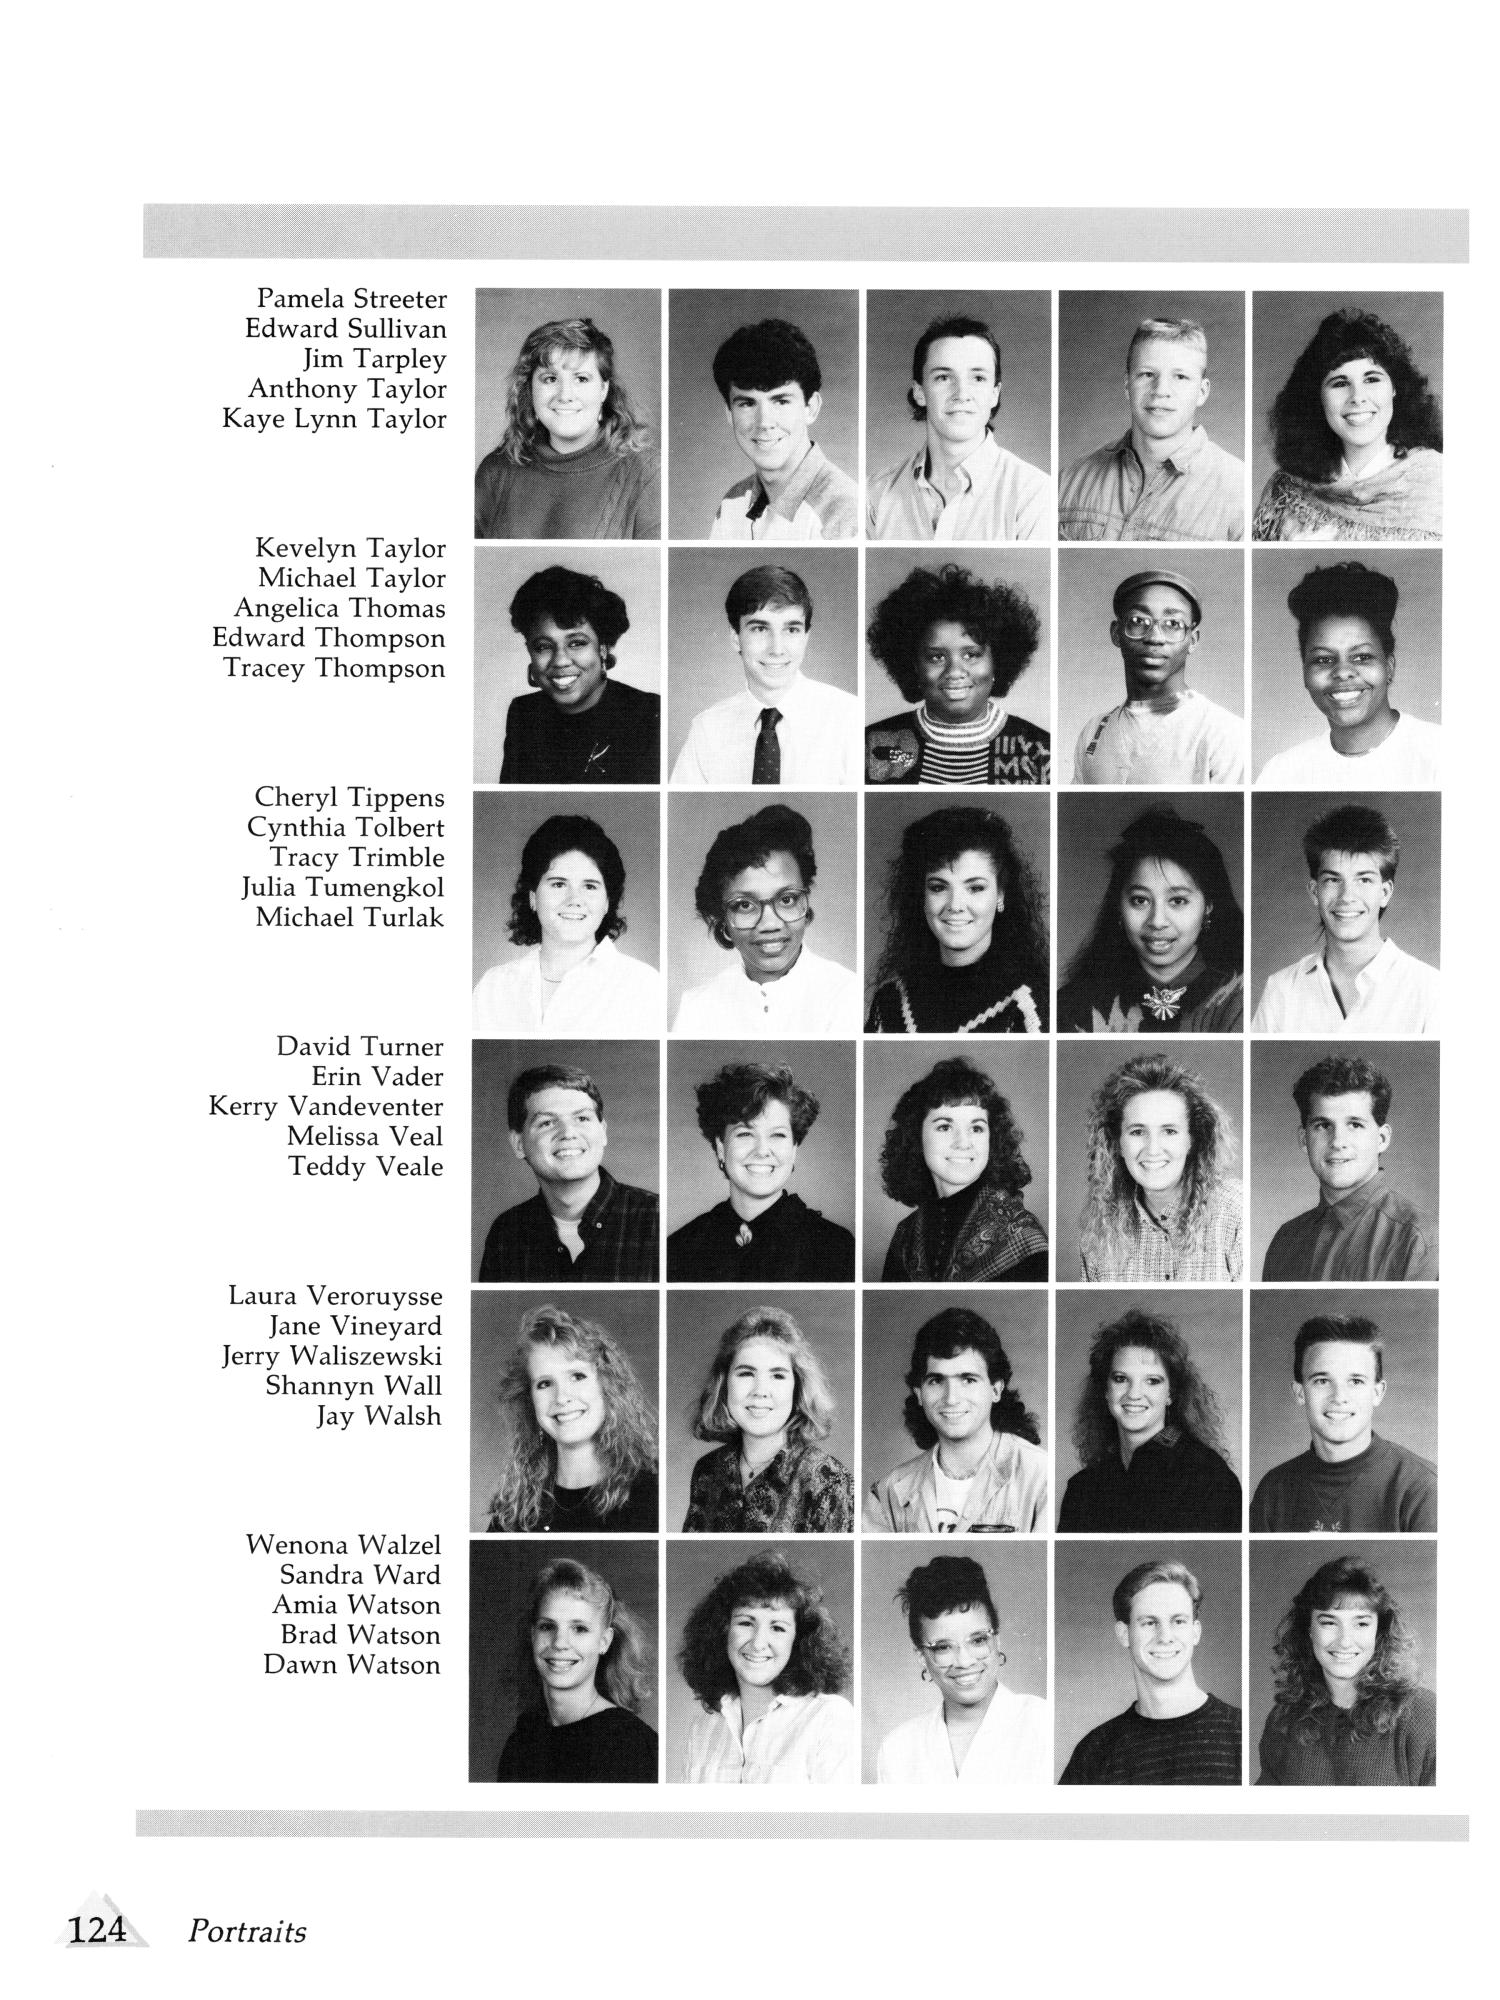 The aerie yearbook of university of north texas 1995 page 44 unt - The Aerie Yearbook Of University Of North Texas 1989 Page 124 Digital Library